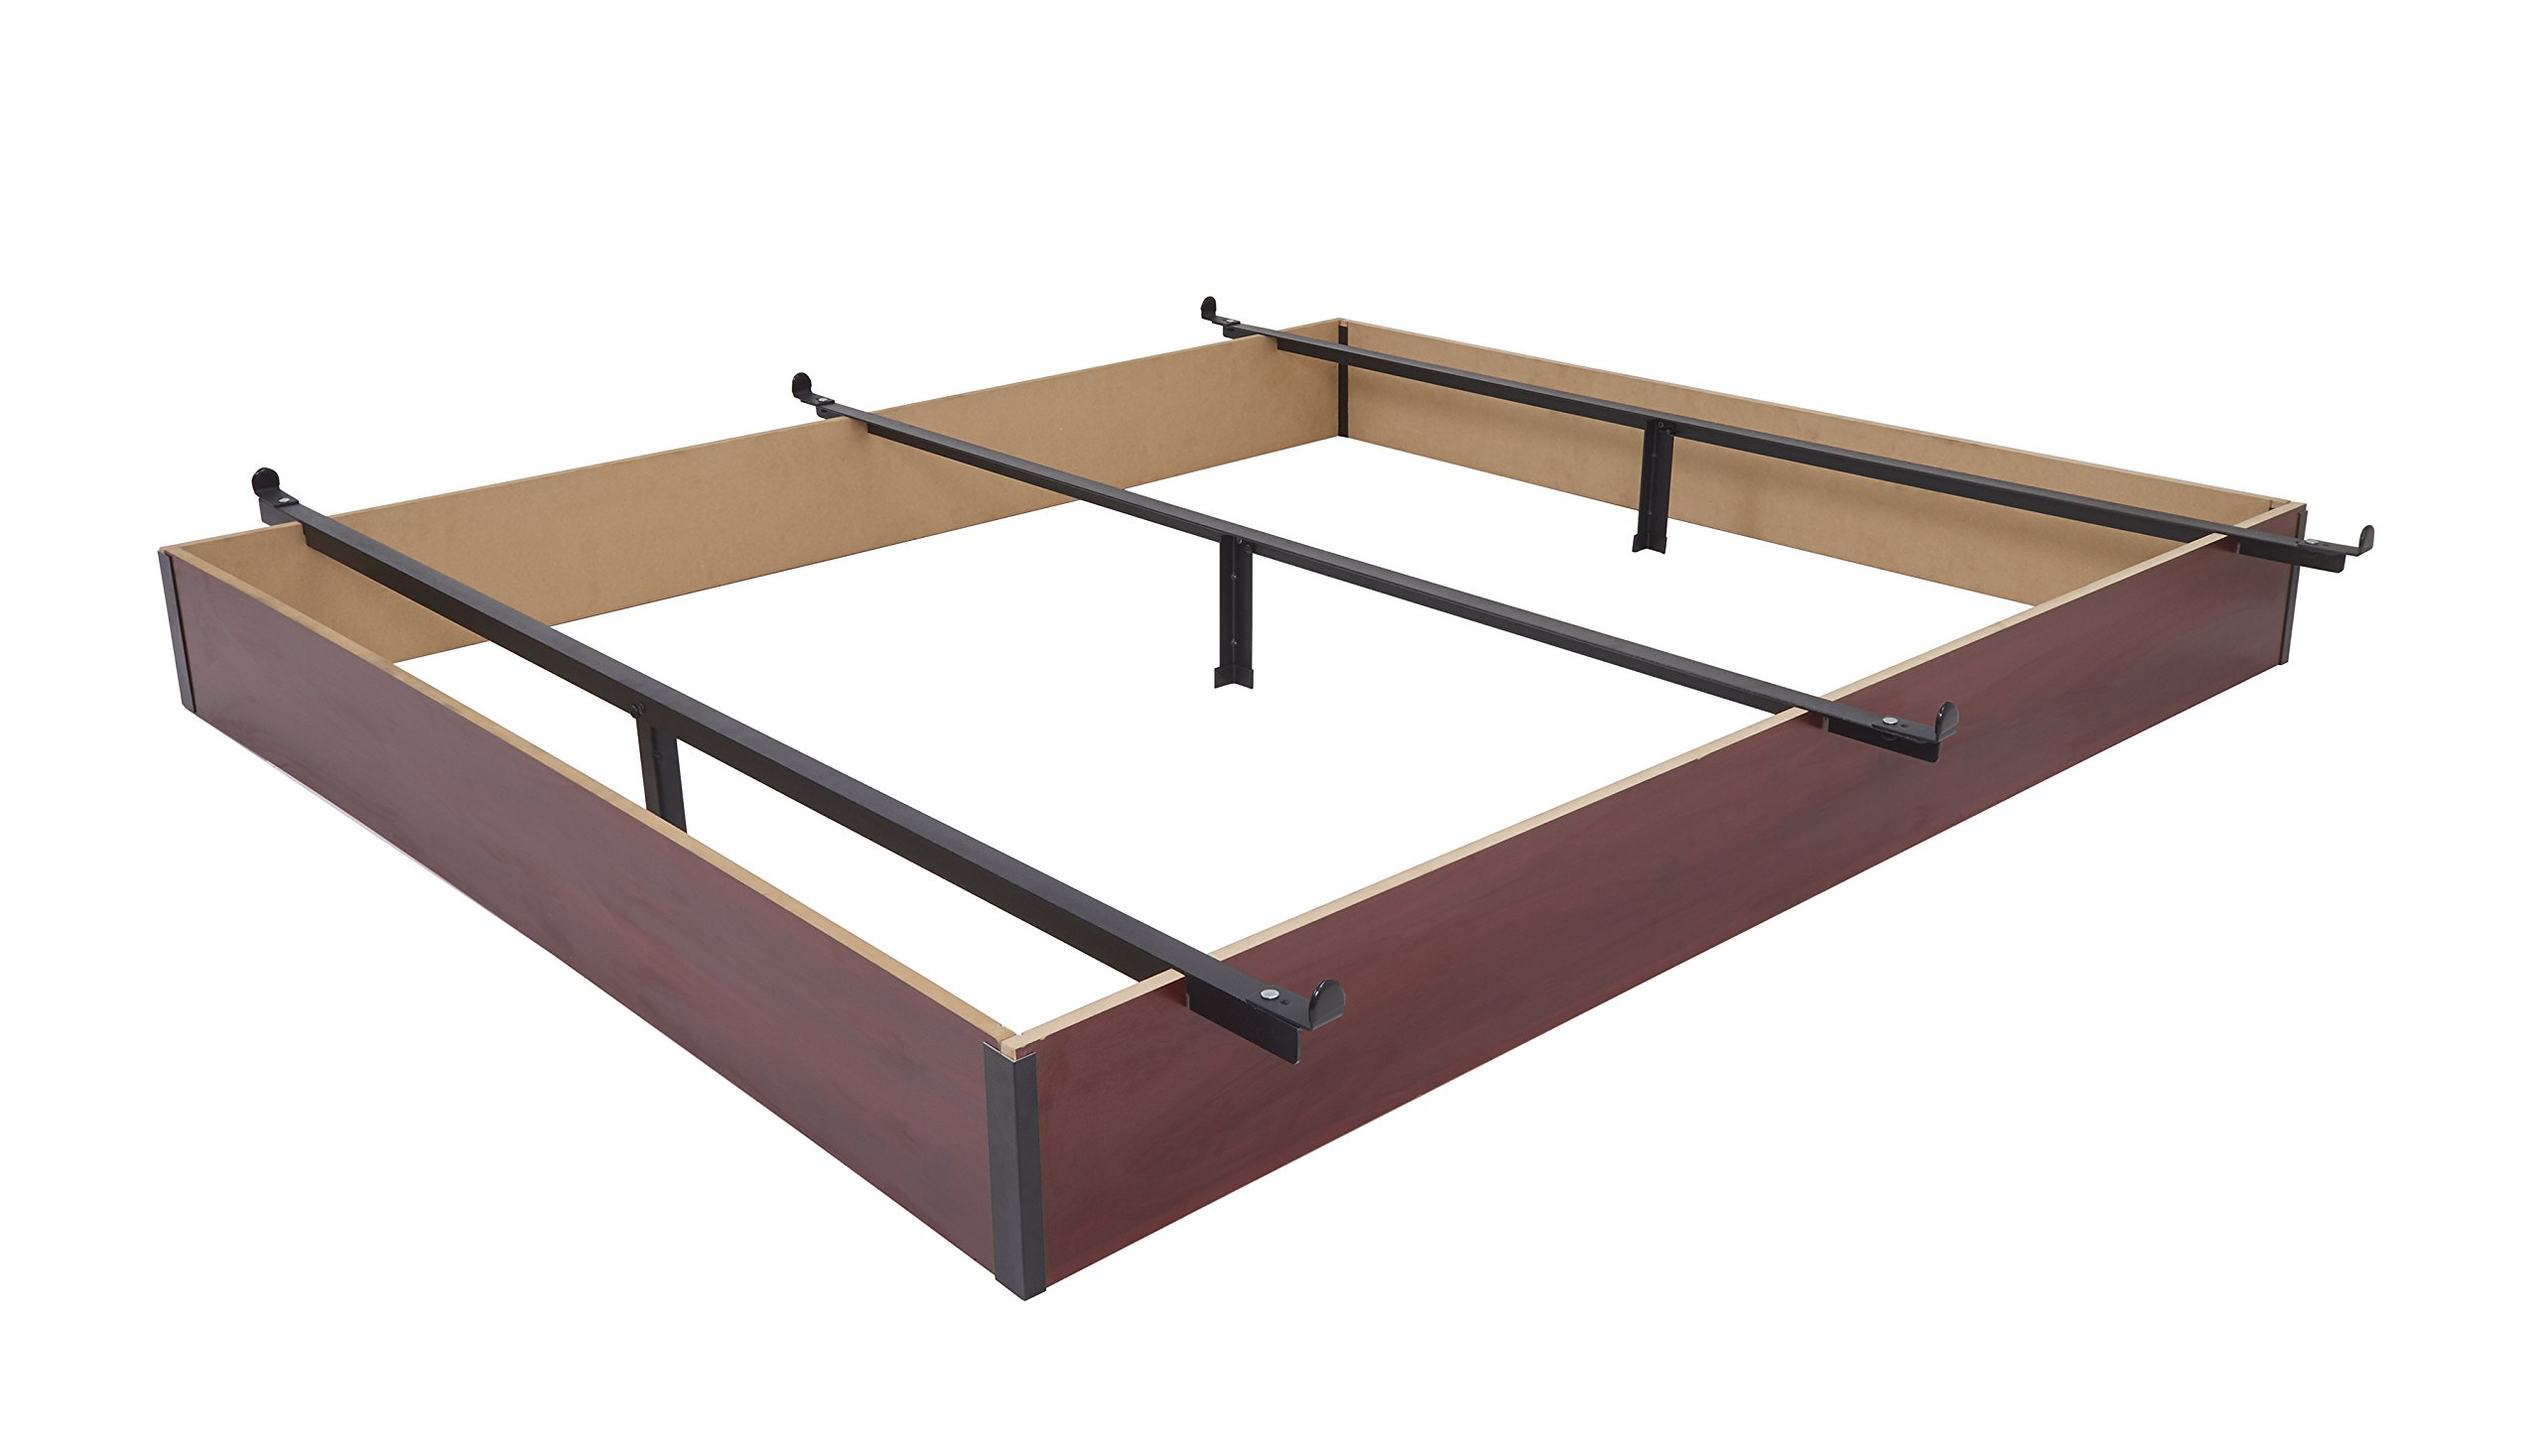 Mantua Cherry Finish Twin and Twin XL Bed Base – Extend the Life of Any Box Spring and Mattress, Prevent Dust Accumulation Under Beds – Model C75WB33 N